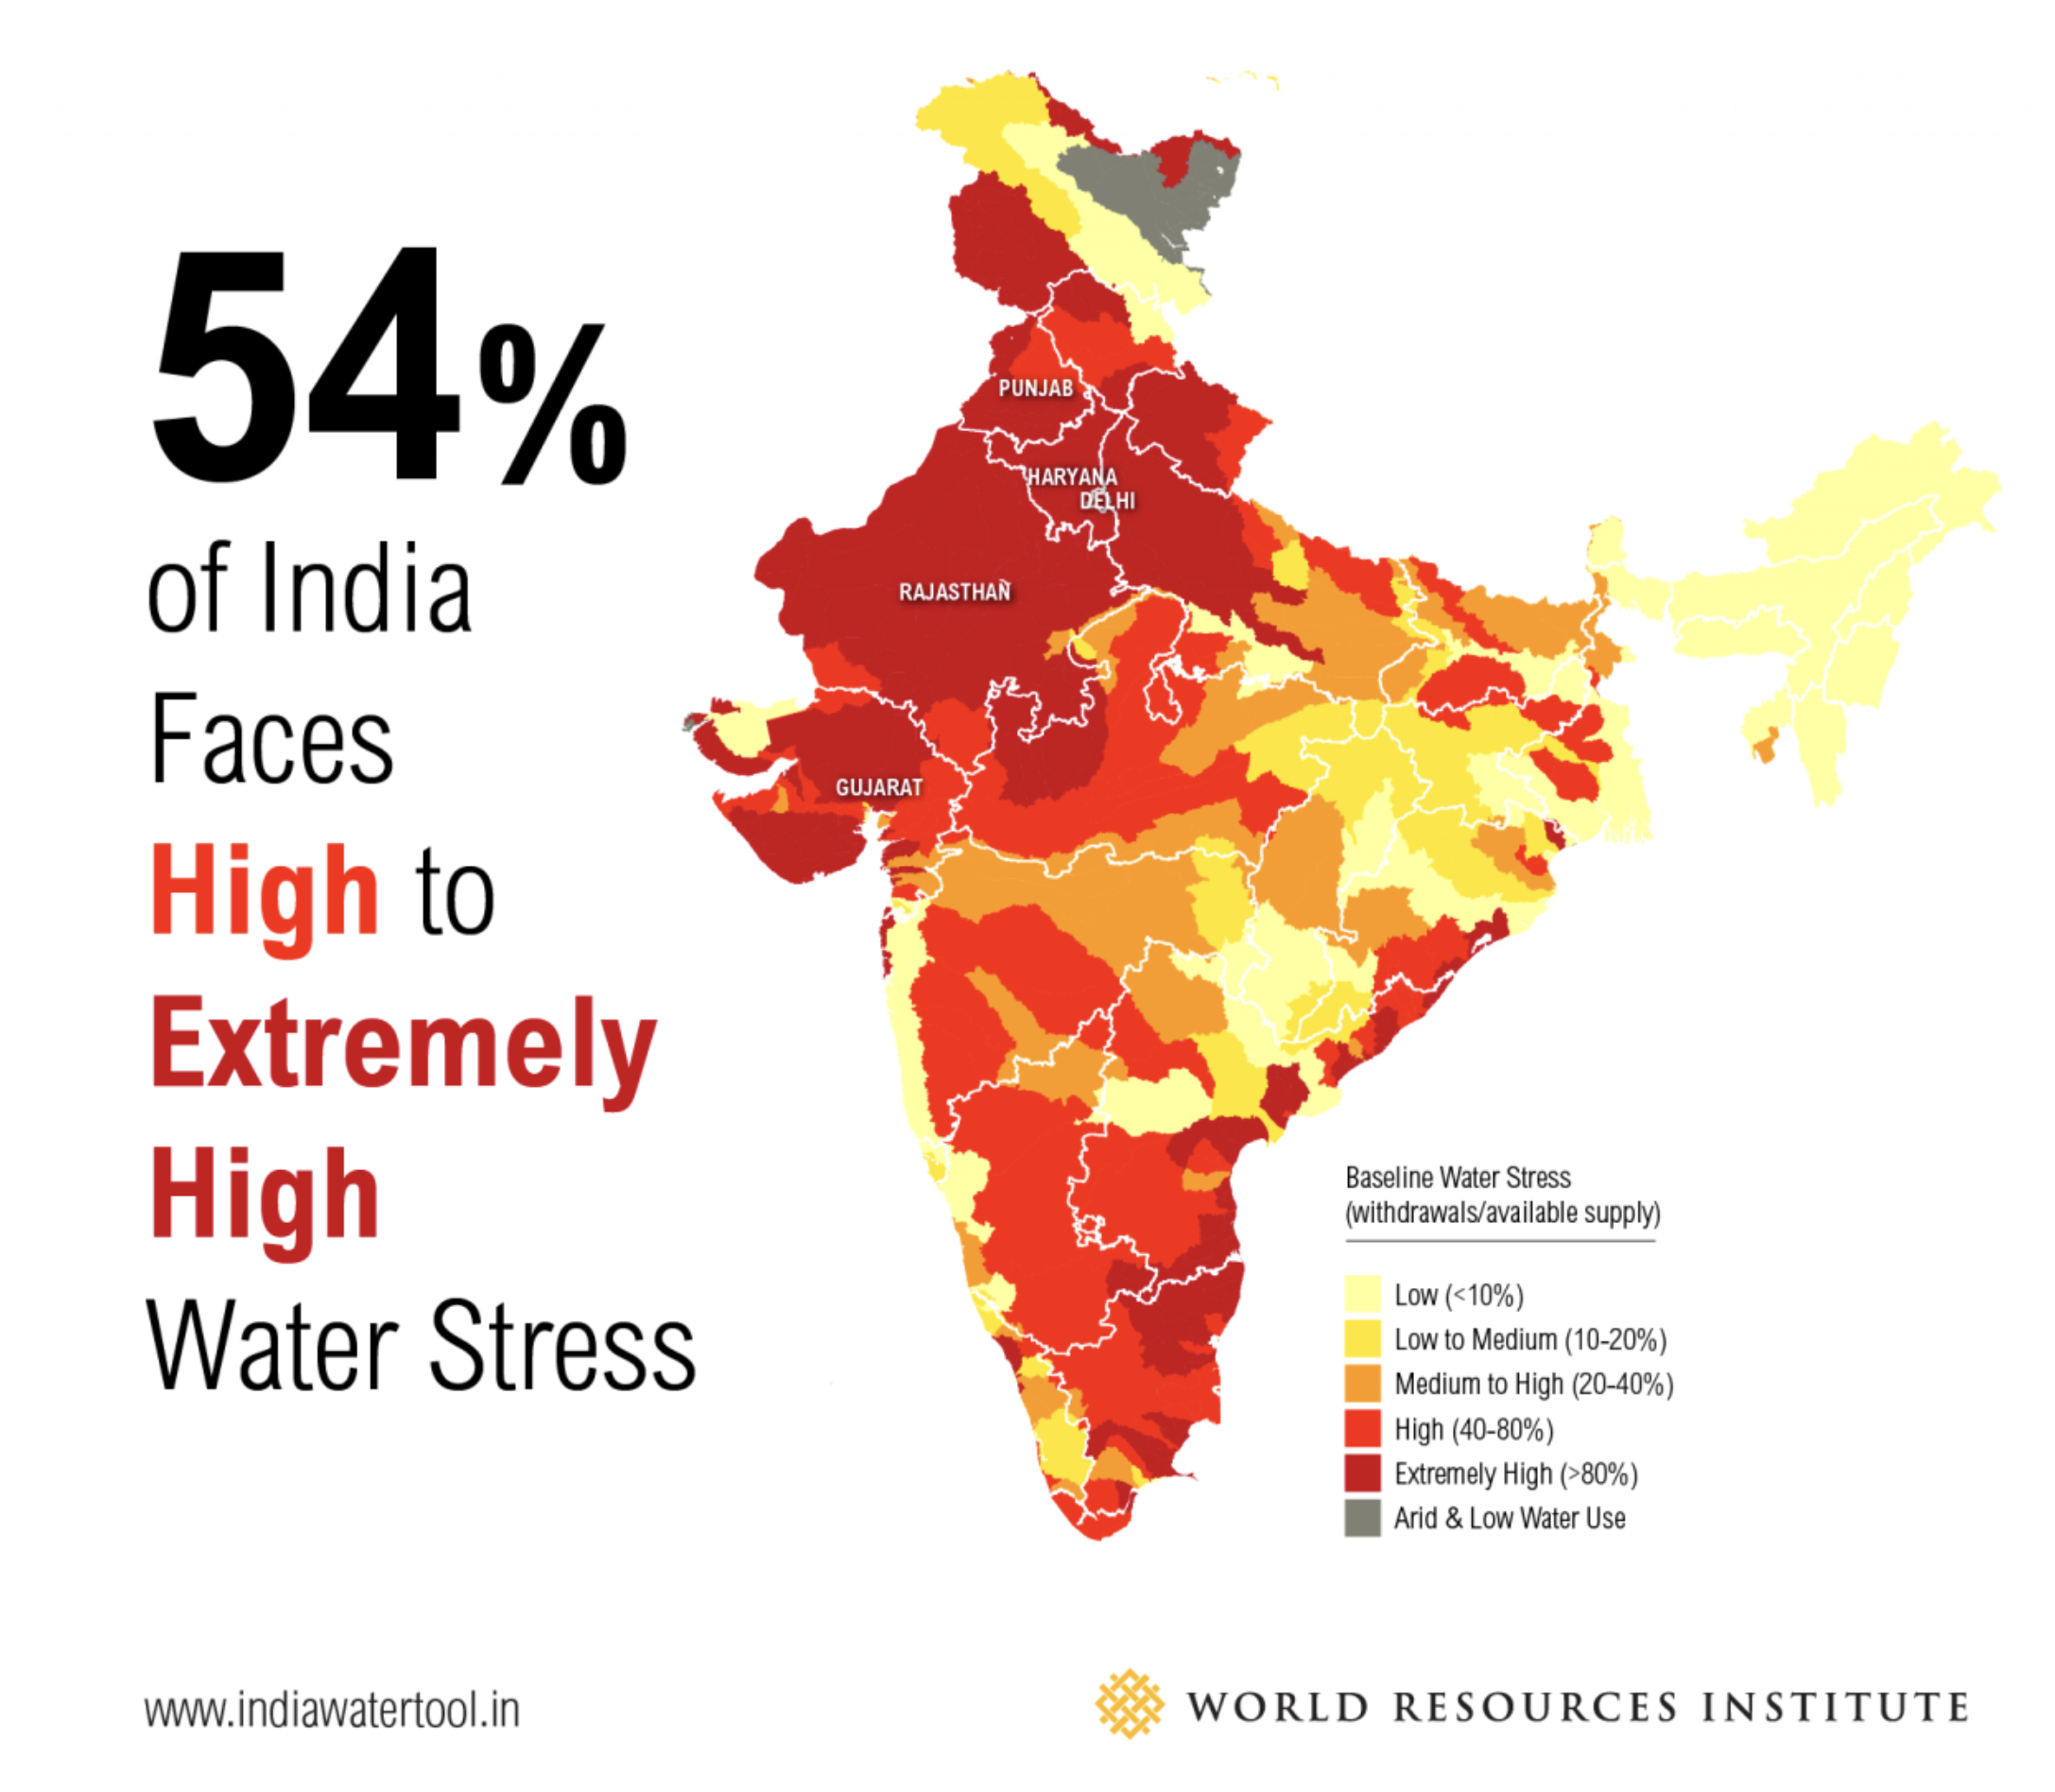 More than half of India faces high levels of water stress today